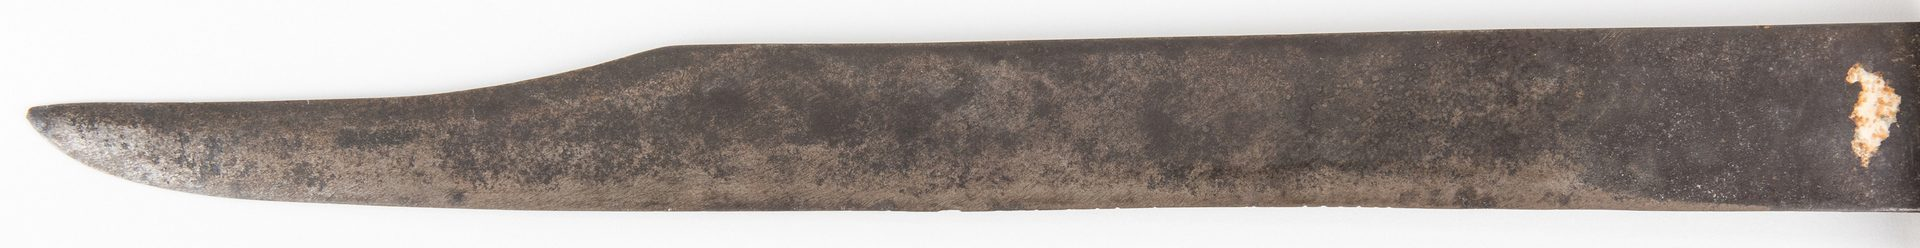 Lot 327: Confederate NC Clip Point Bowie Knife, Calvin Baker, 3rd VA Infantry